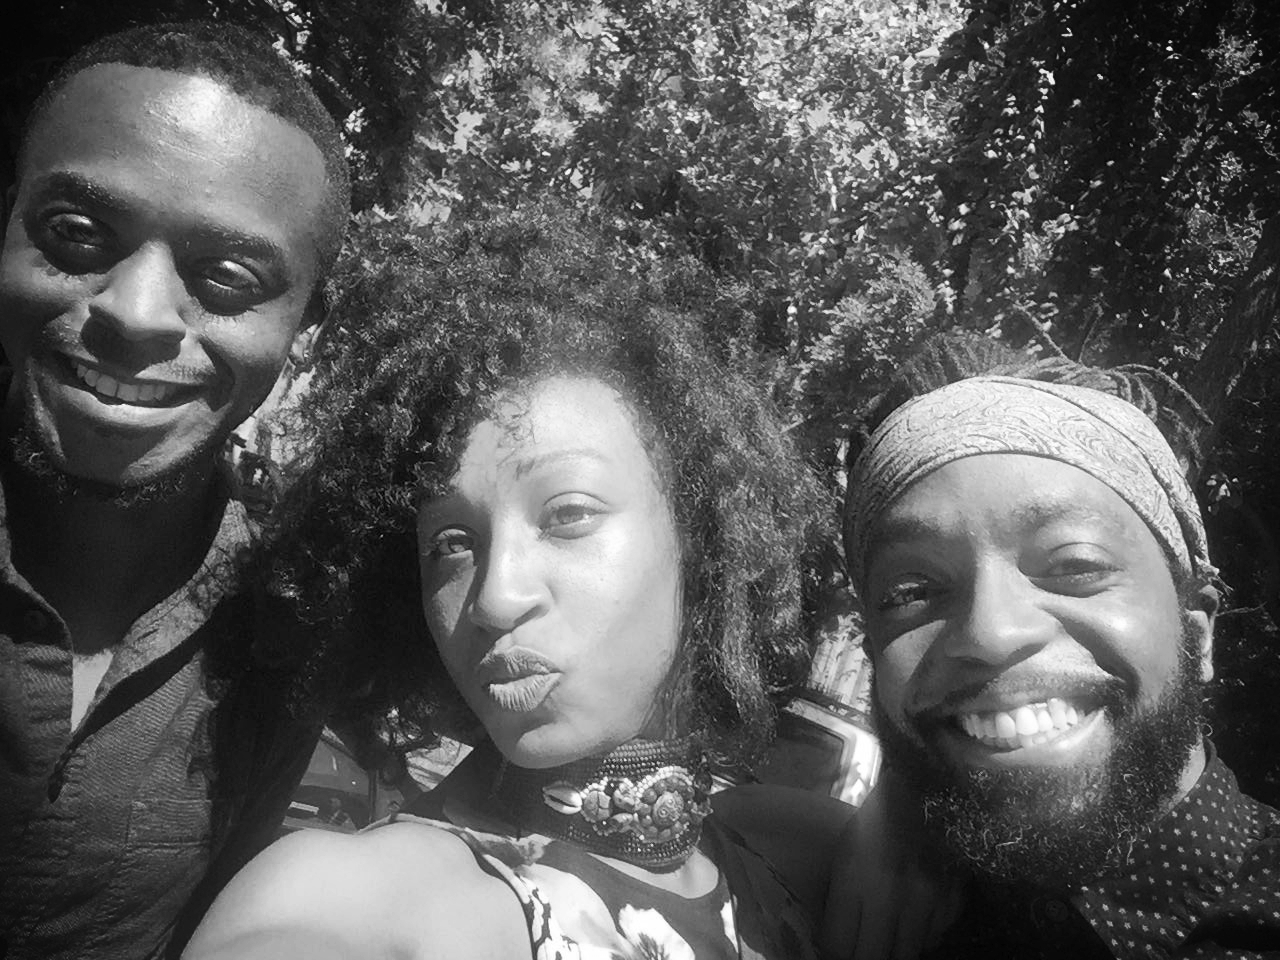 Alex with the members of the GetSomeJoy team, Mario Starks and Enesha Nash.